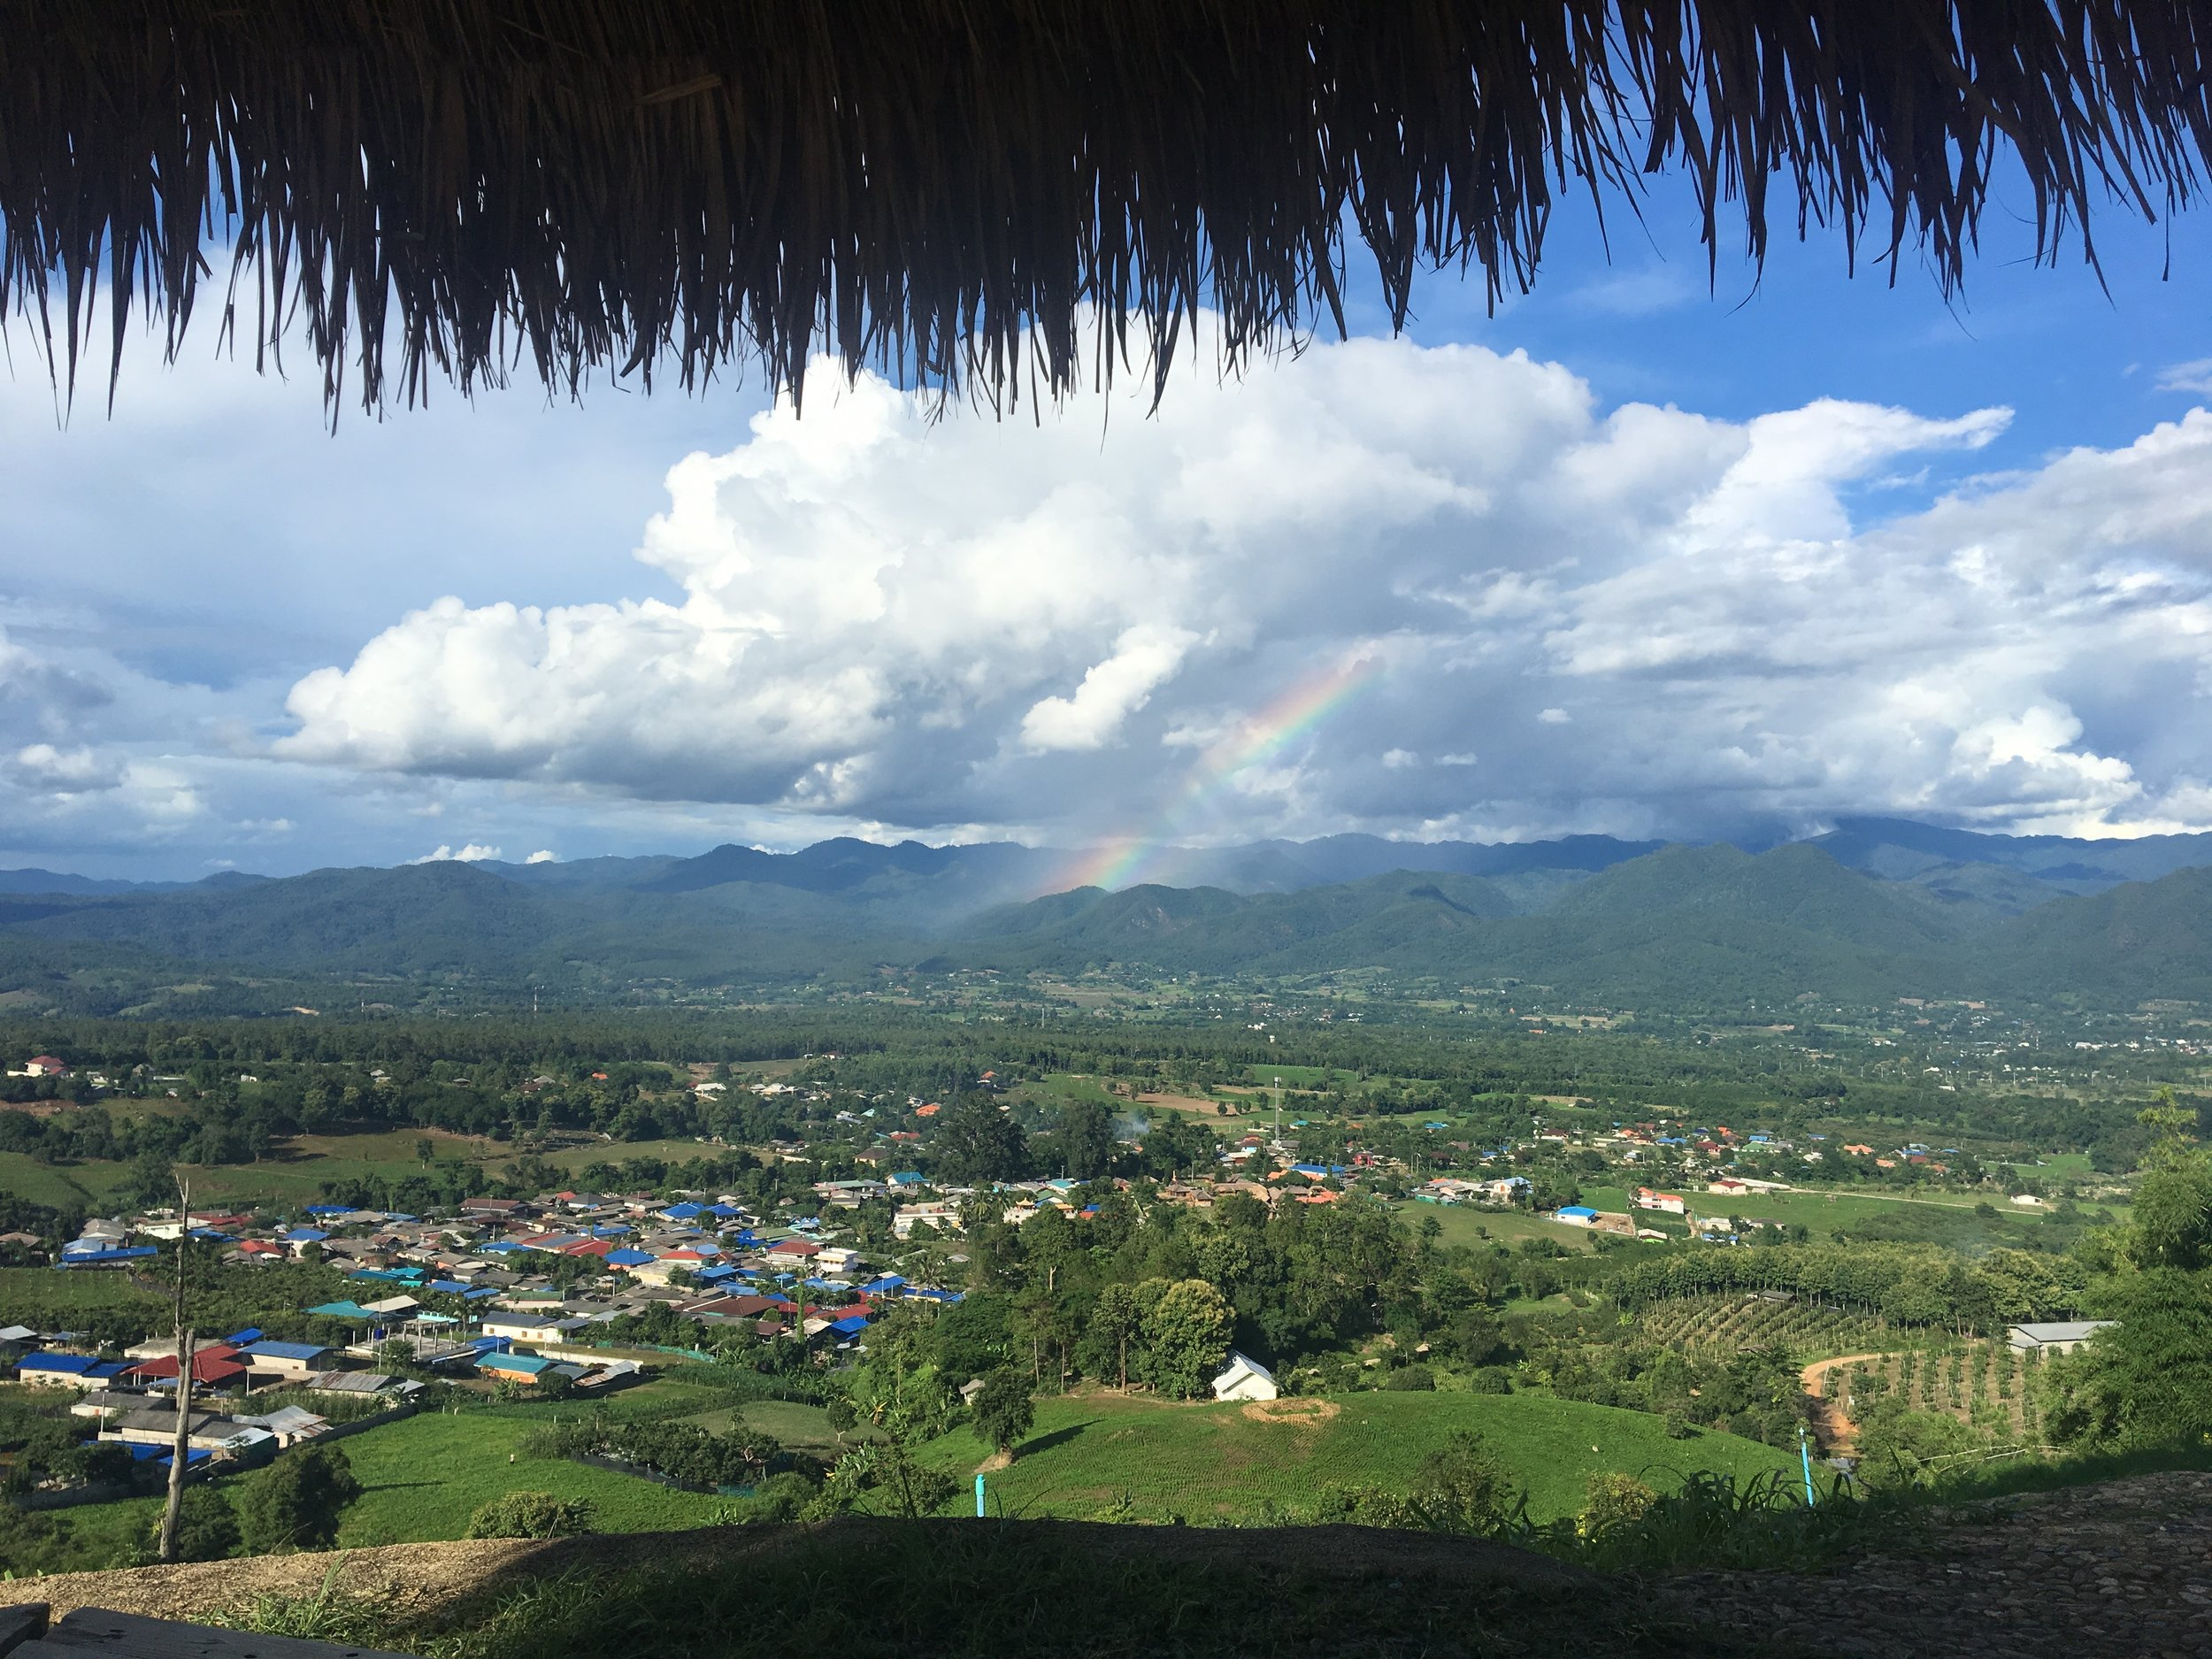 Viewpoint overlooking all of Pai + rainbow